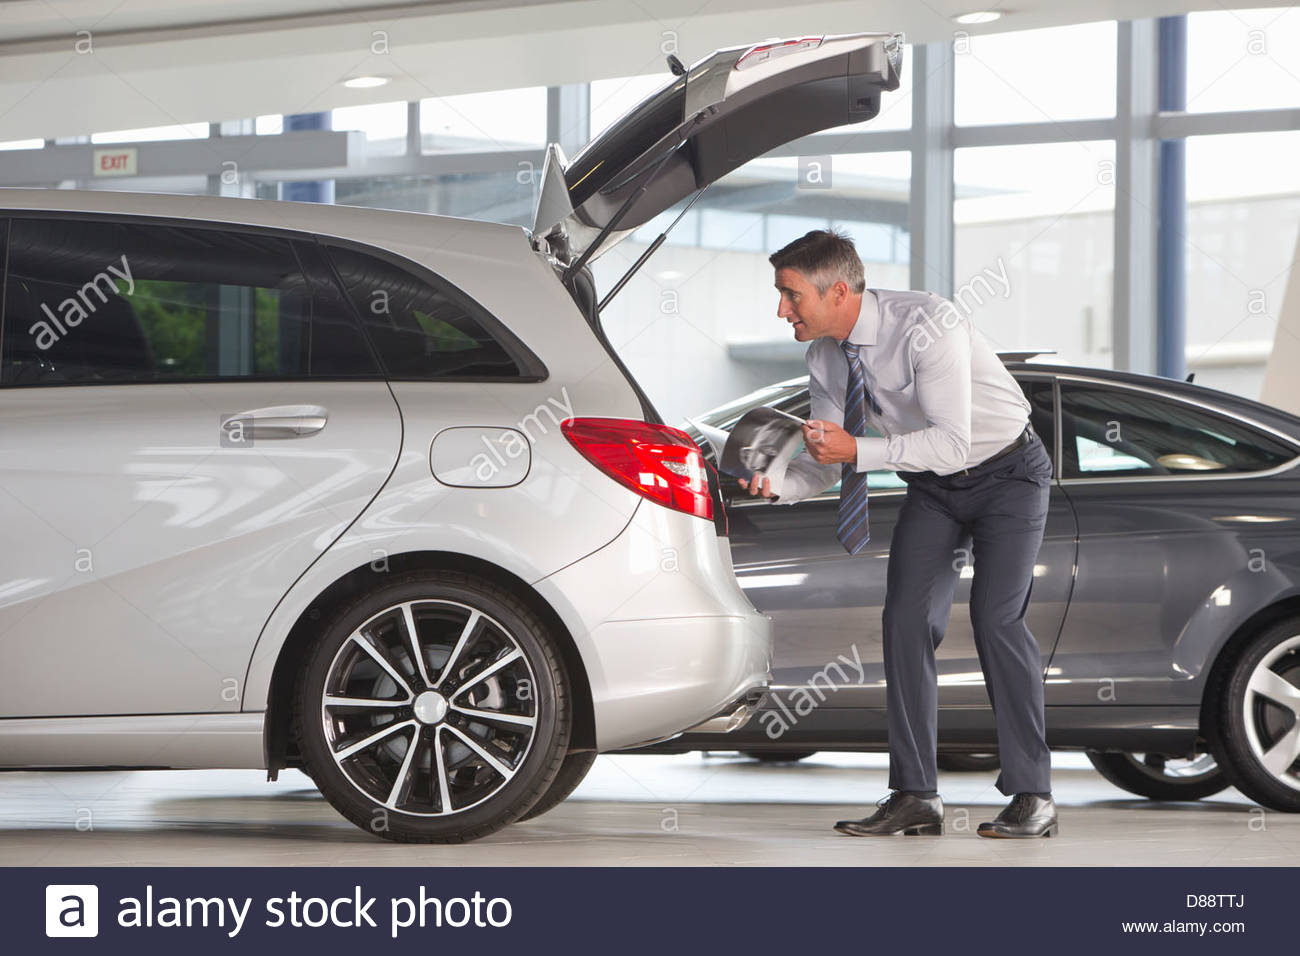 Man with brochure looking into hatchback of car in car dealership showroom - Stock Image